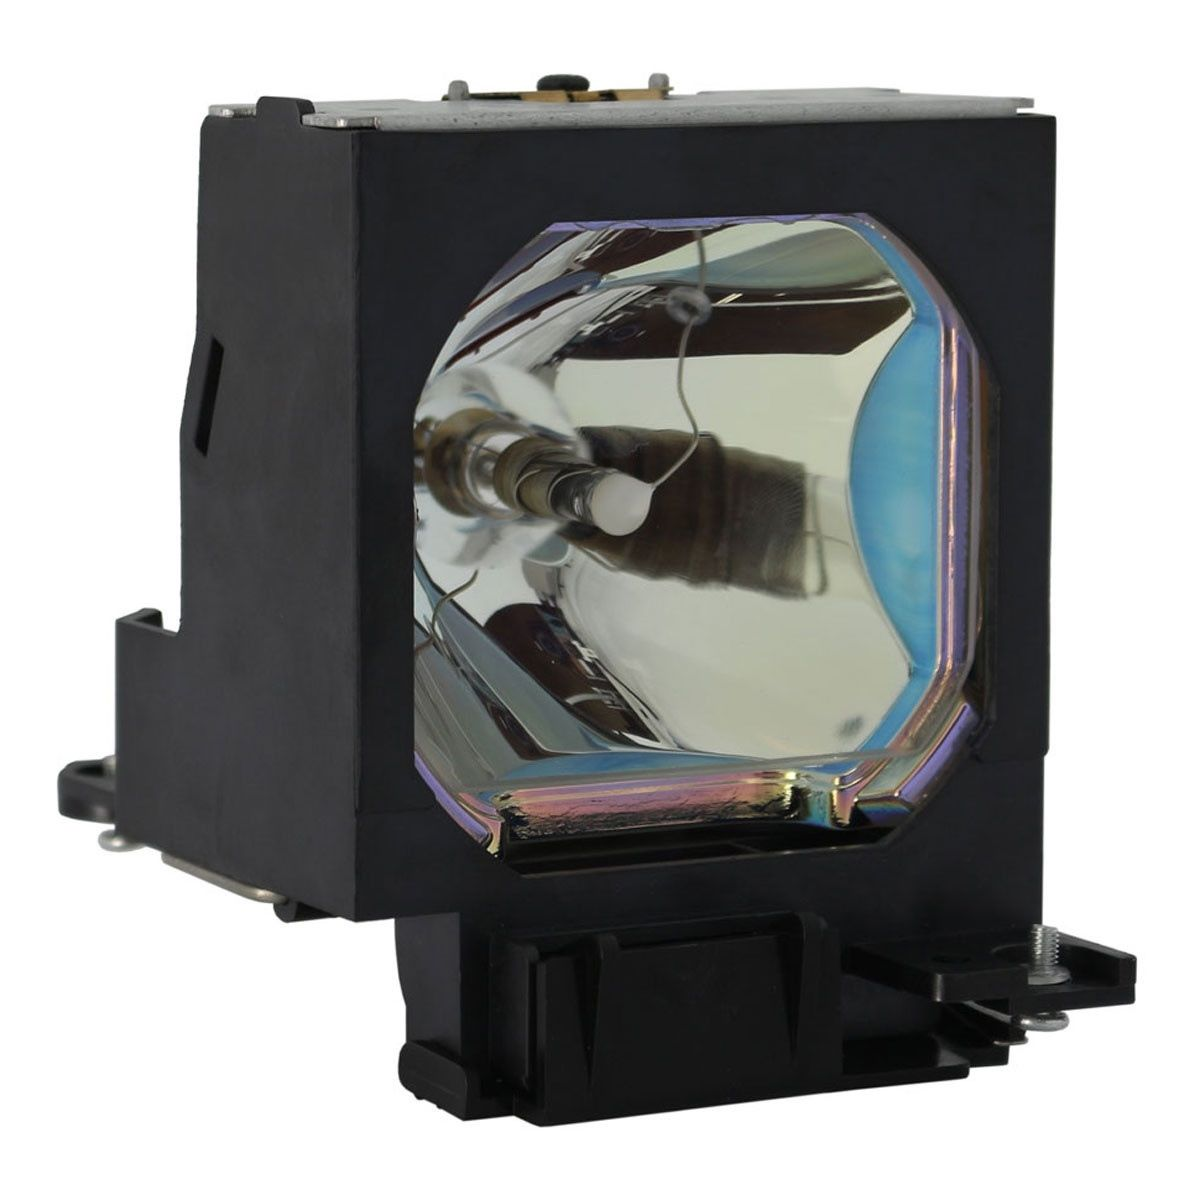 Projector Lamp Bulb LMP-P200 LMPP200 for SONY VPL-PX20 VPL-PX30 VPL-VW10H with housing brand new replacement lamp with housing lmp p200 for sony vpl px20 vpl px30 xw10ht projector